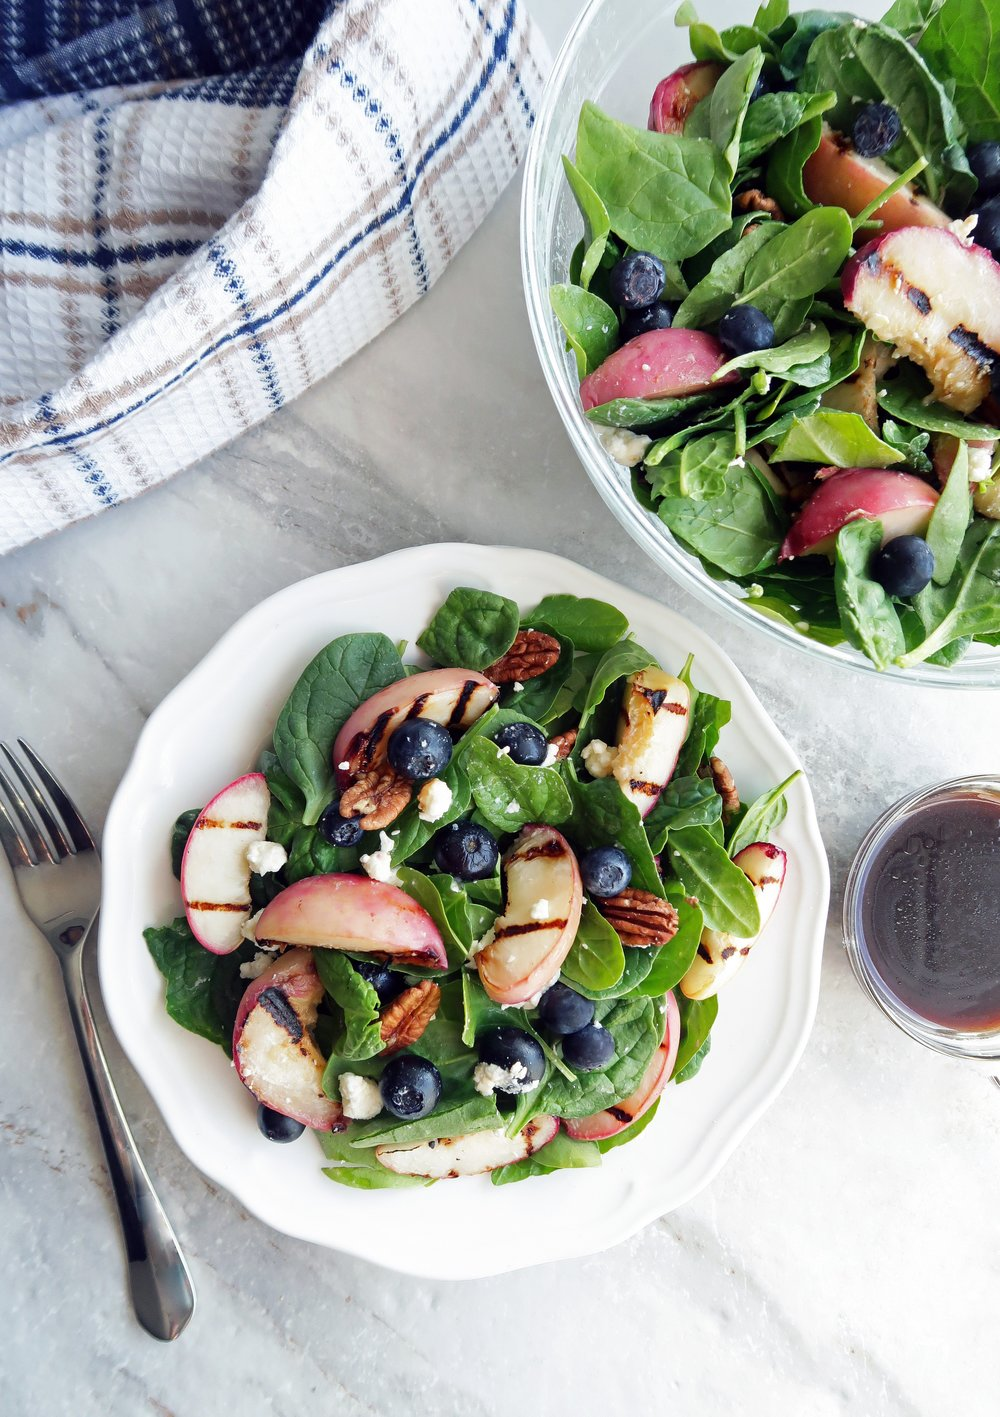 Grilled Peach Blueberry Spinach Salad with Honey Balsamic Vinaigrette: A fresh, simple, and easy to make gluten-free summer salad. www.yayforfood.com